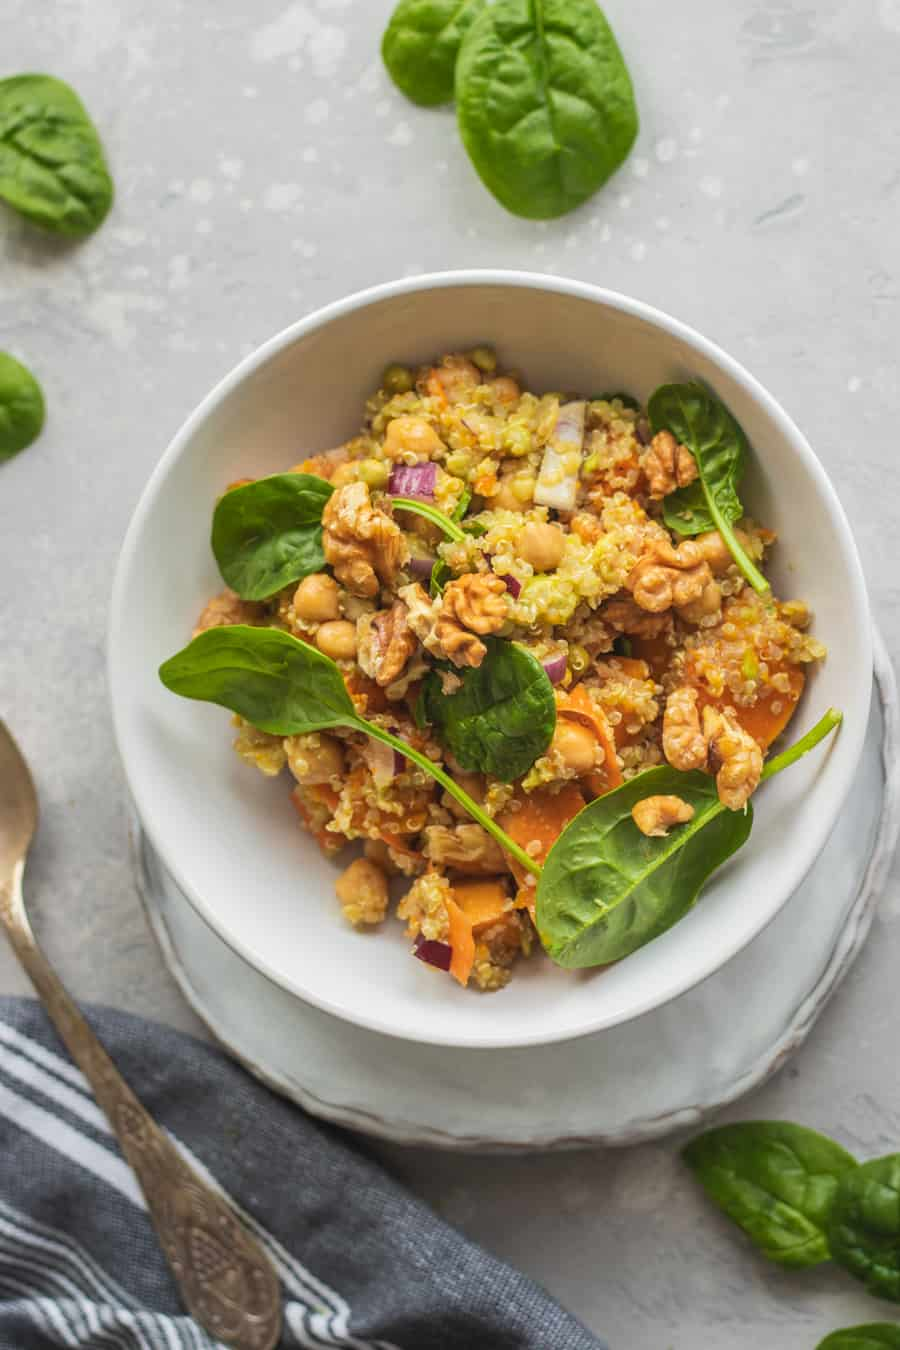 Bowl of vegan chickpea quinoa salad with pumpkin and spinach